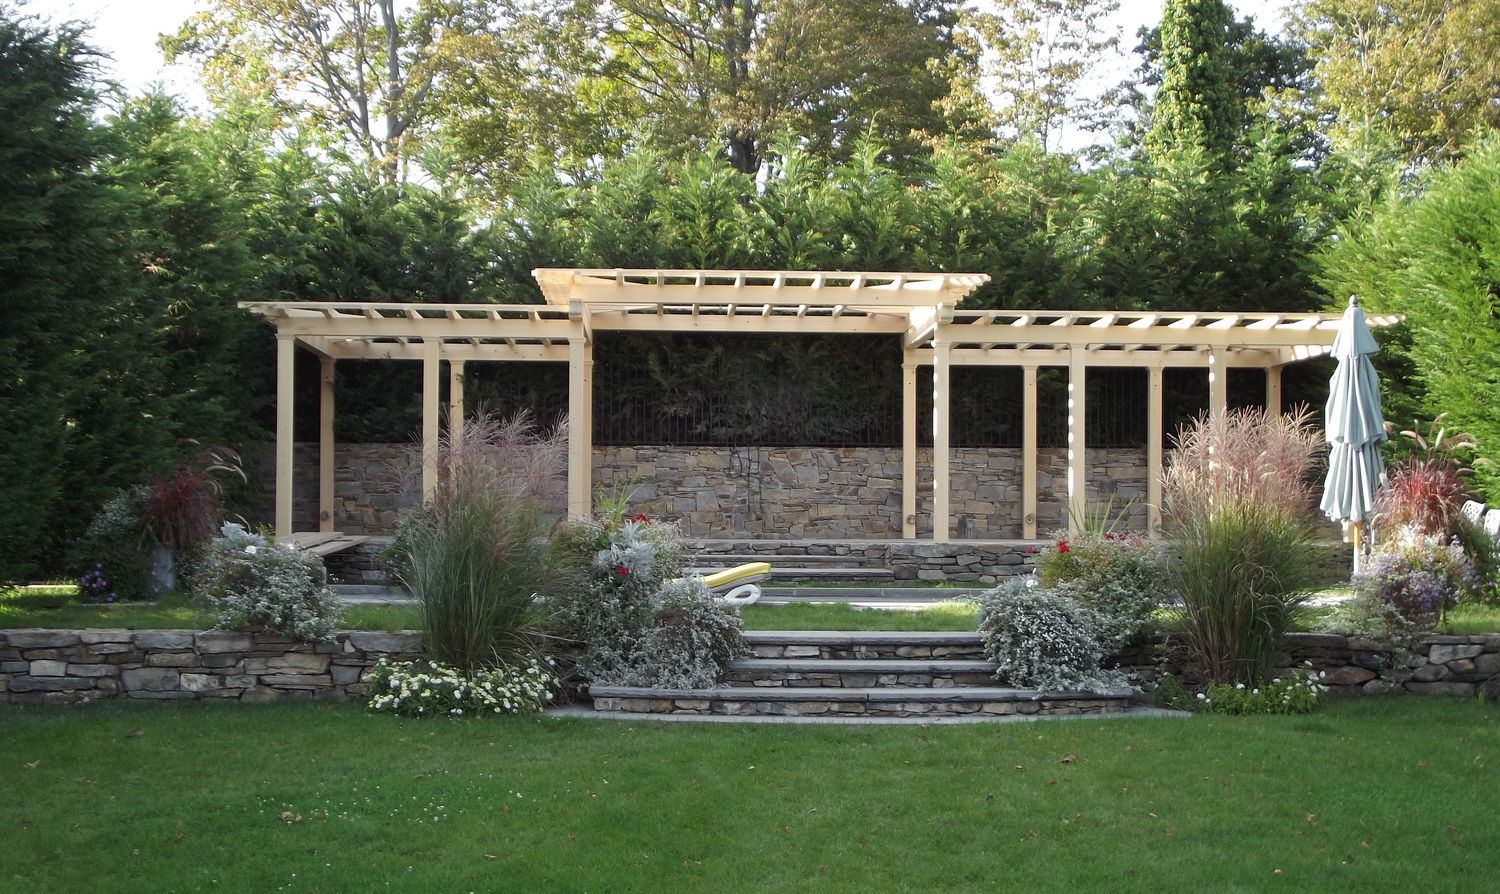 Pergola of Port Orford cedar